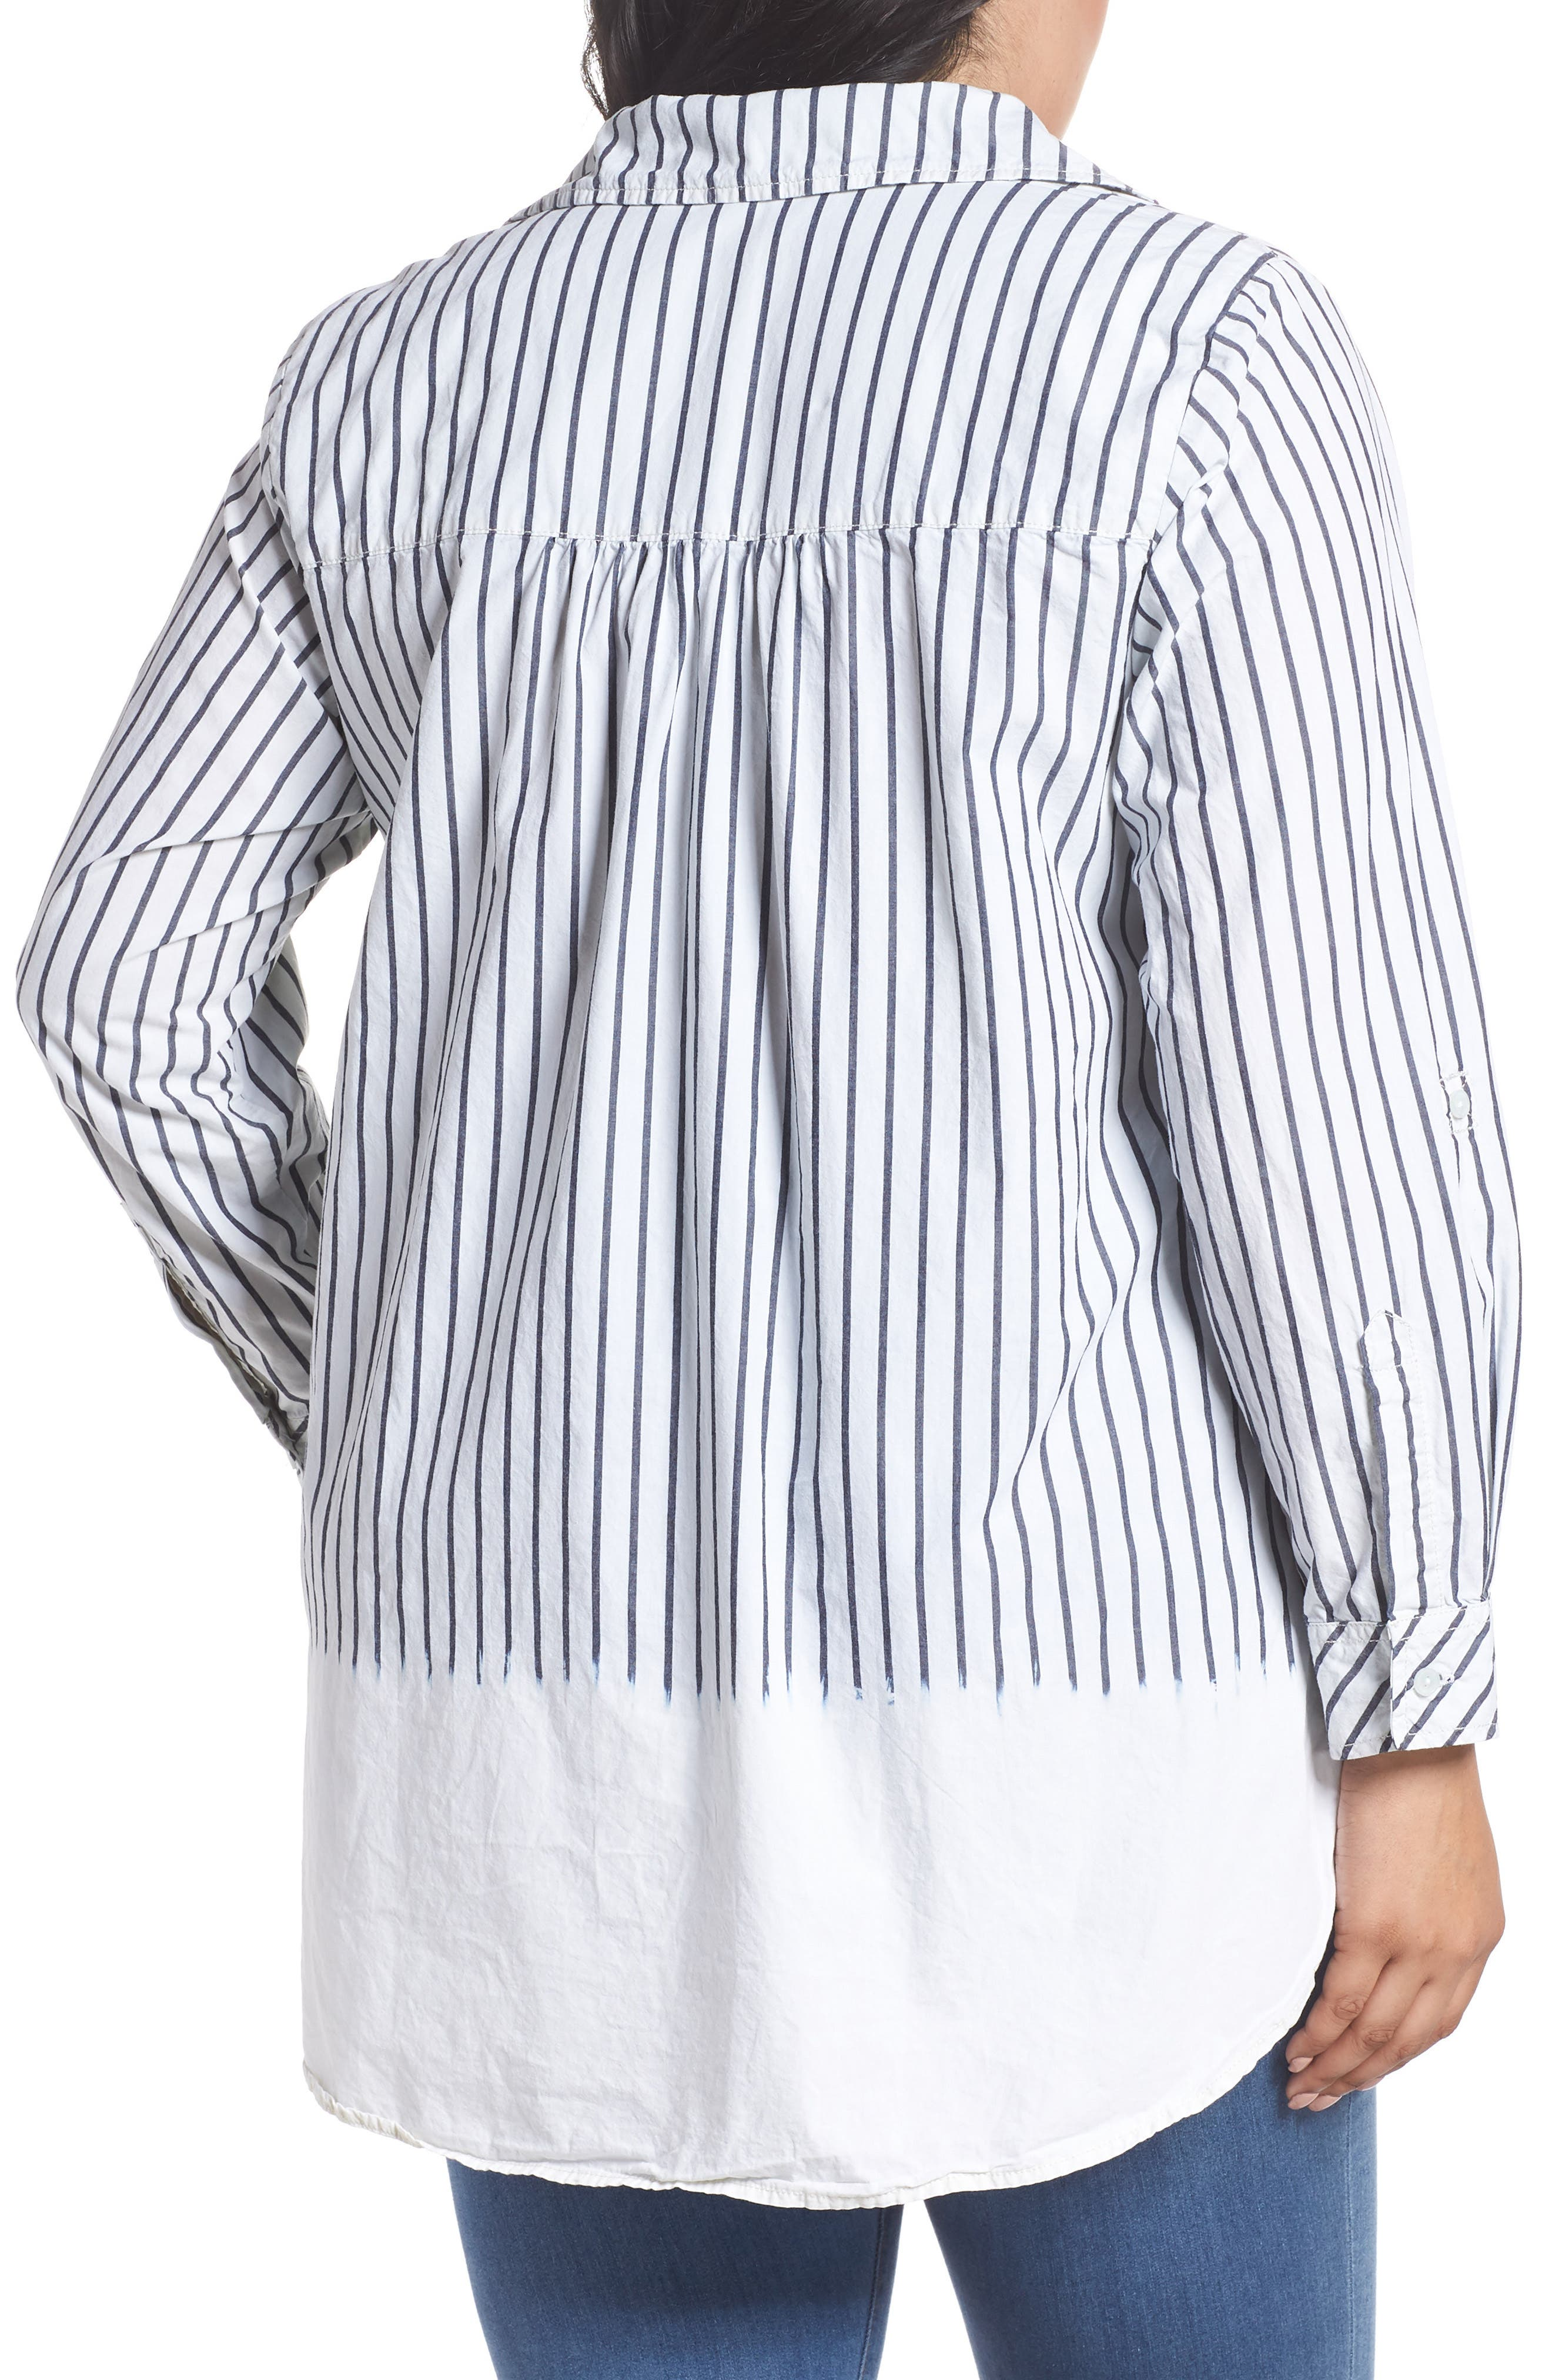 Miles Stripe Maxi Tunic Top,                             Alternate thumbnail 2, color,                             110